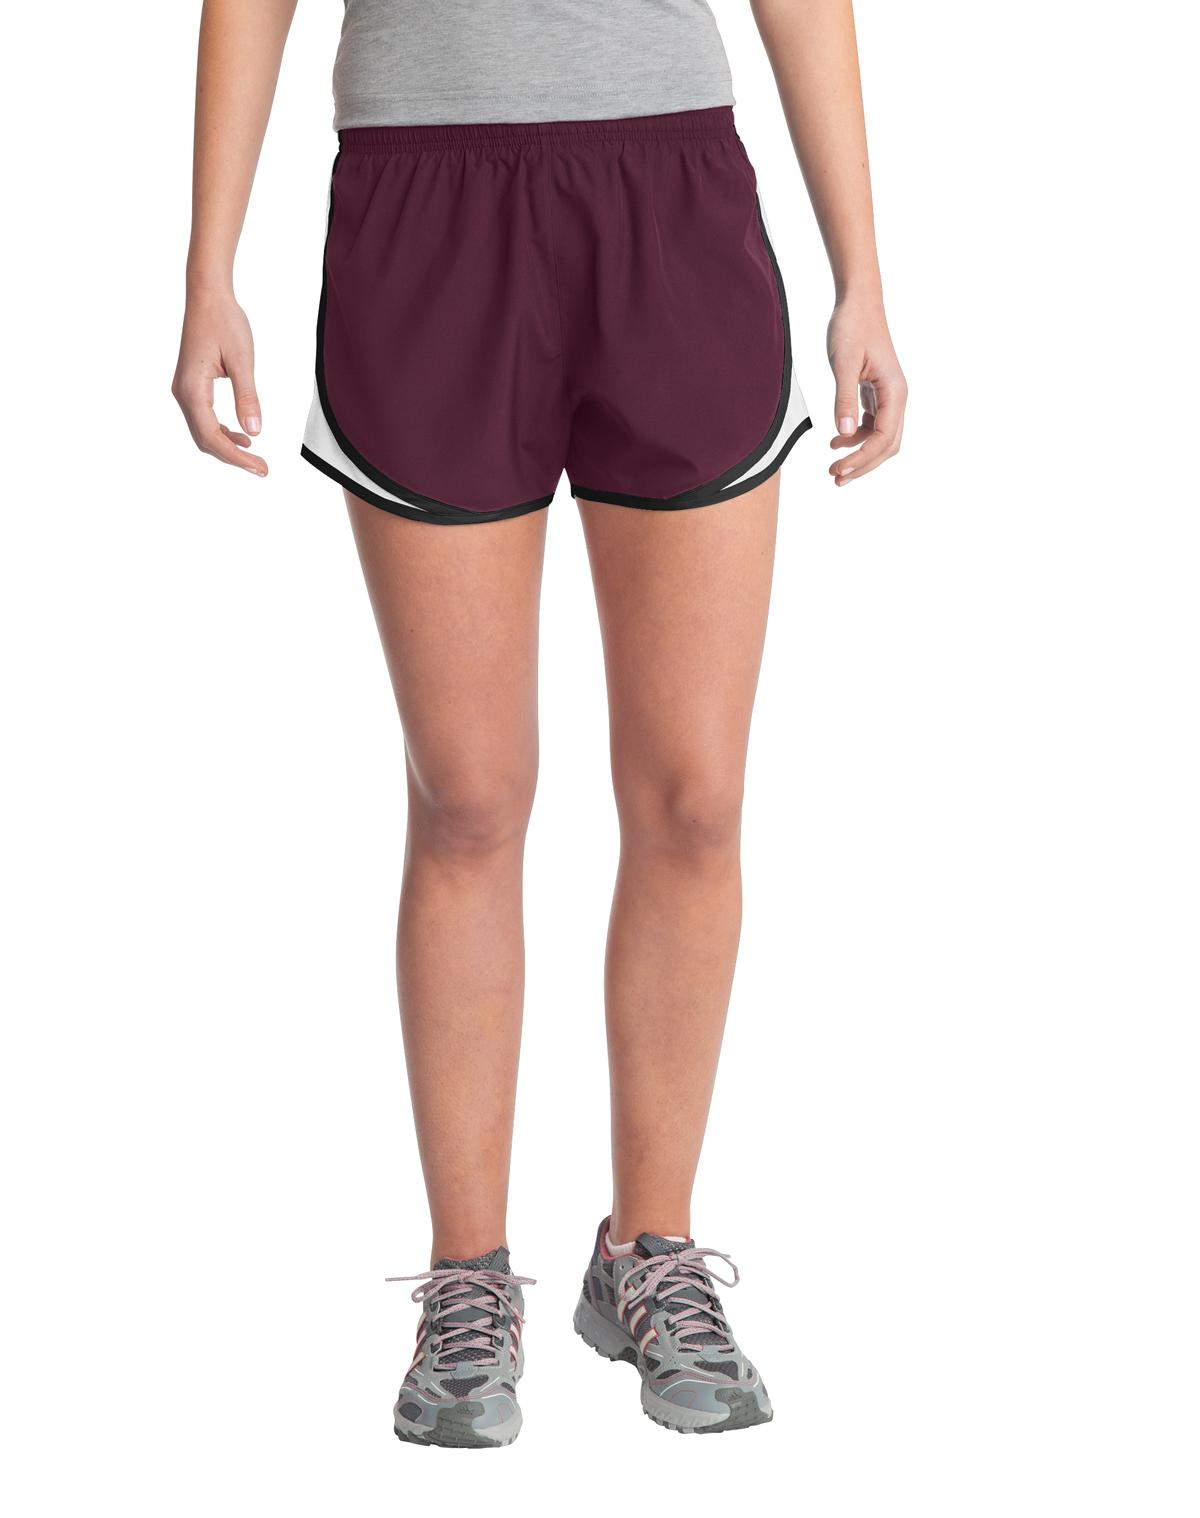 Sport-Tek ®  Ladies Cadence Short. LST304 - Maroon/ White/ Black